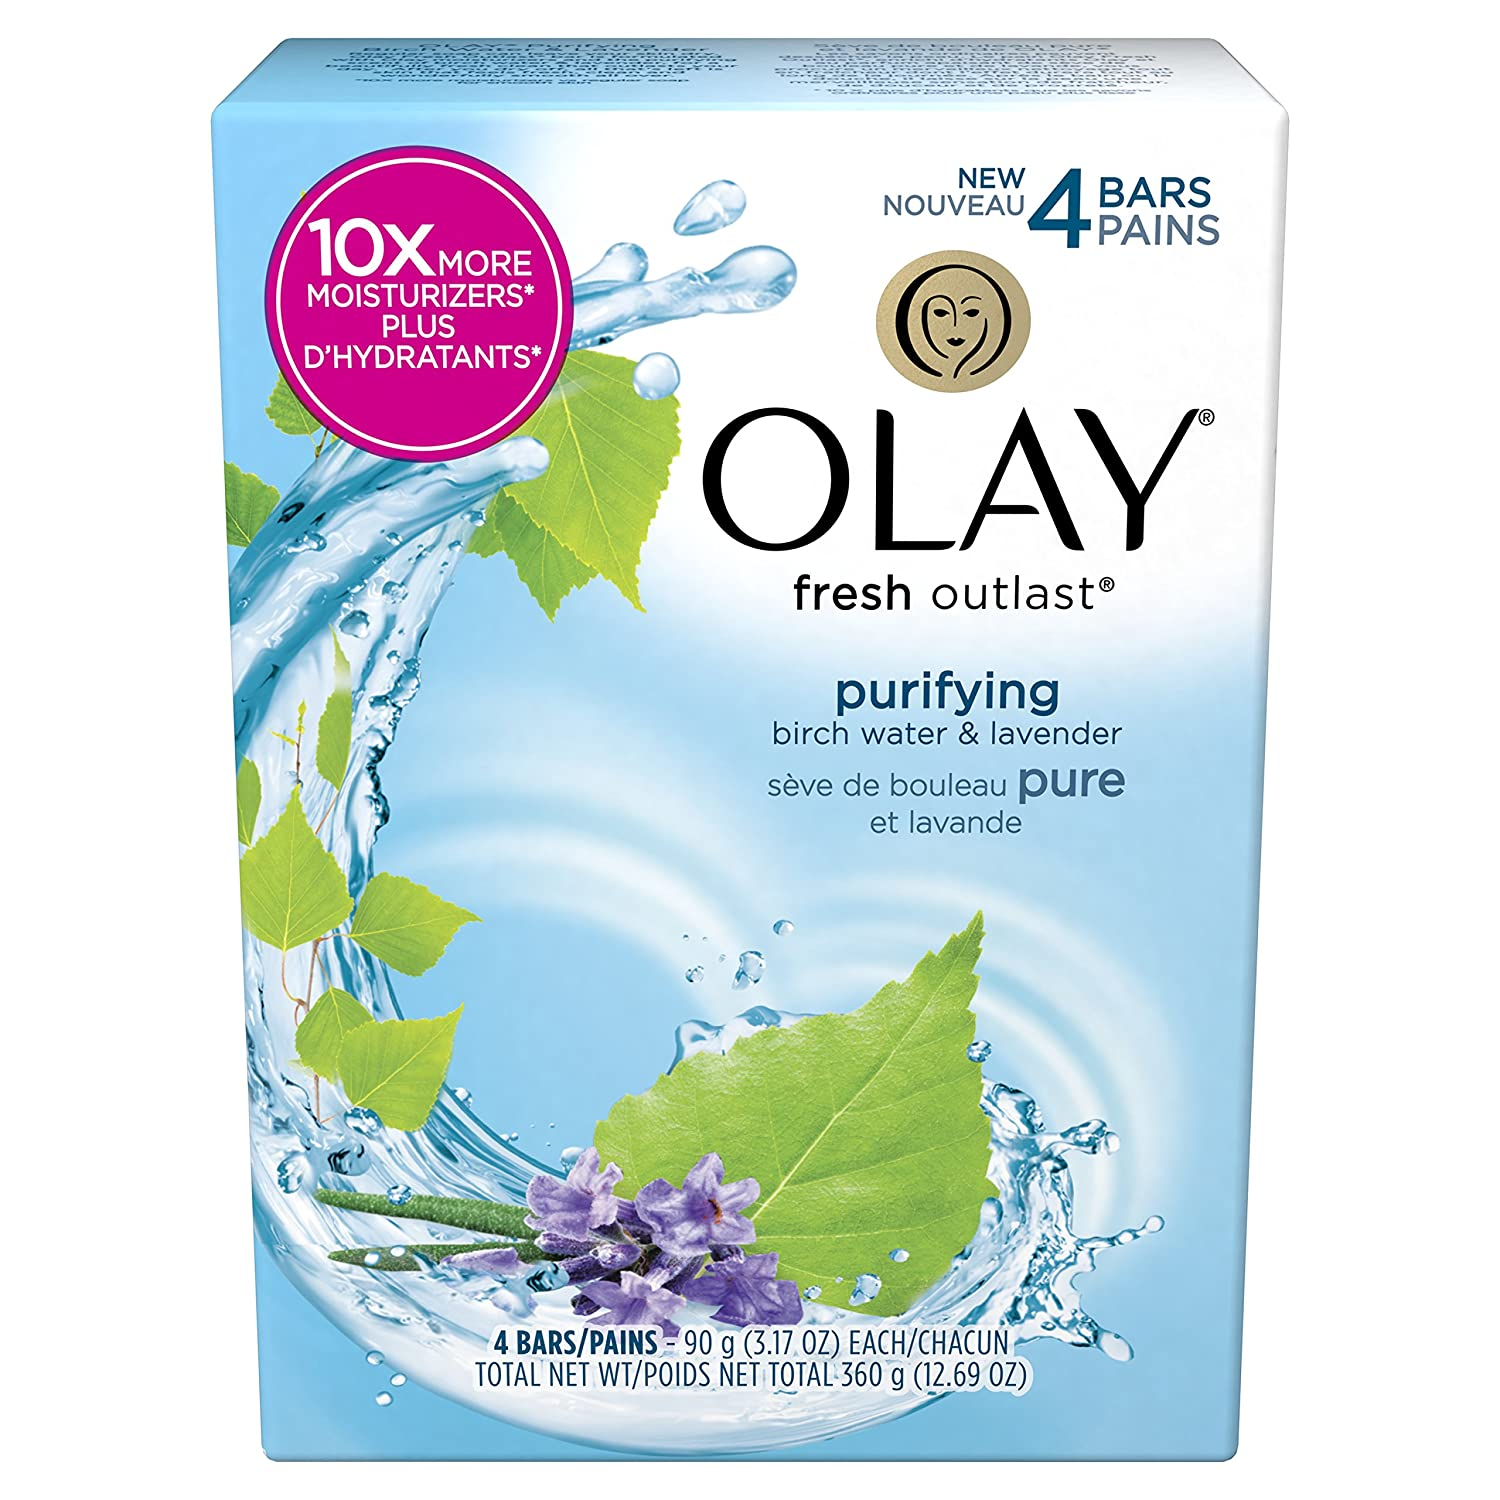 Olay Fresh Outlast Purifying Birch Water & Lavender Beauty Bar 90g 4 count Procter and Gamble